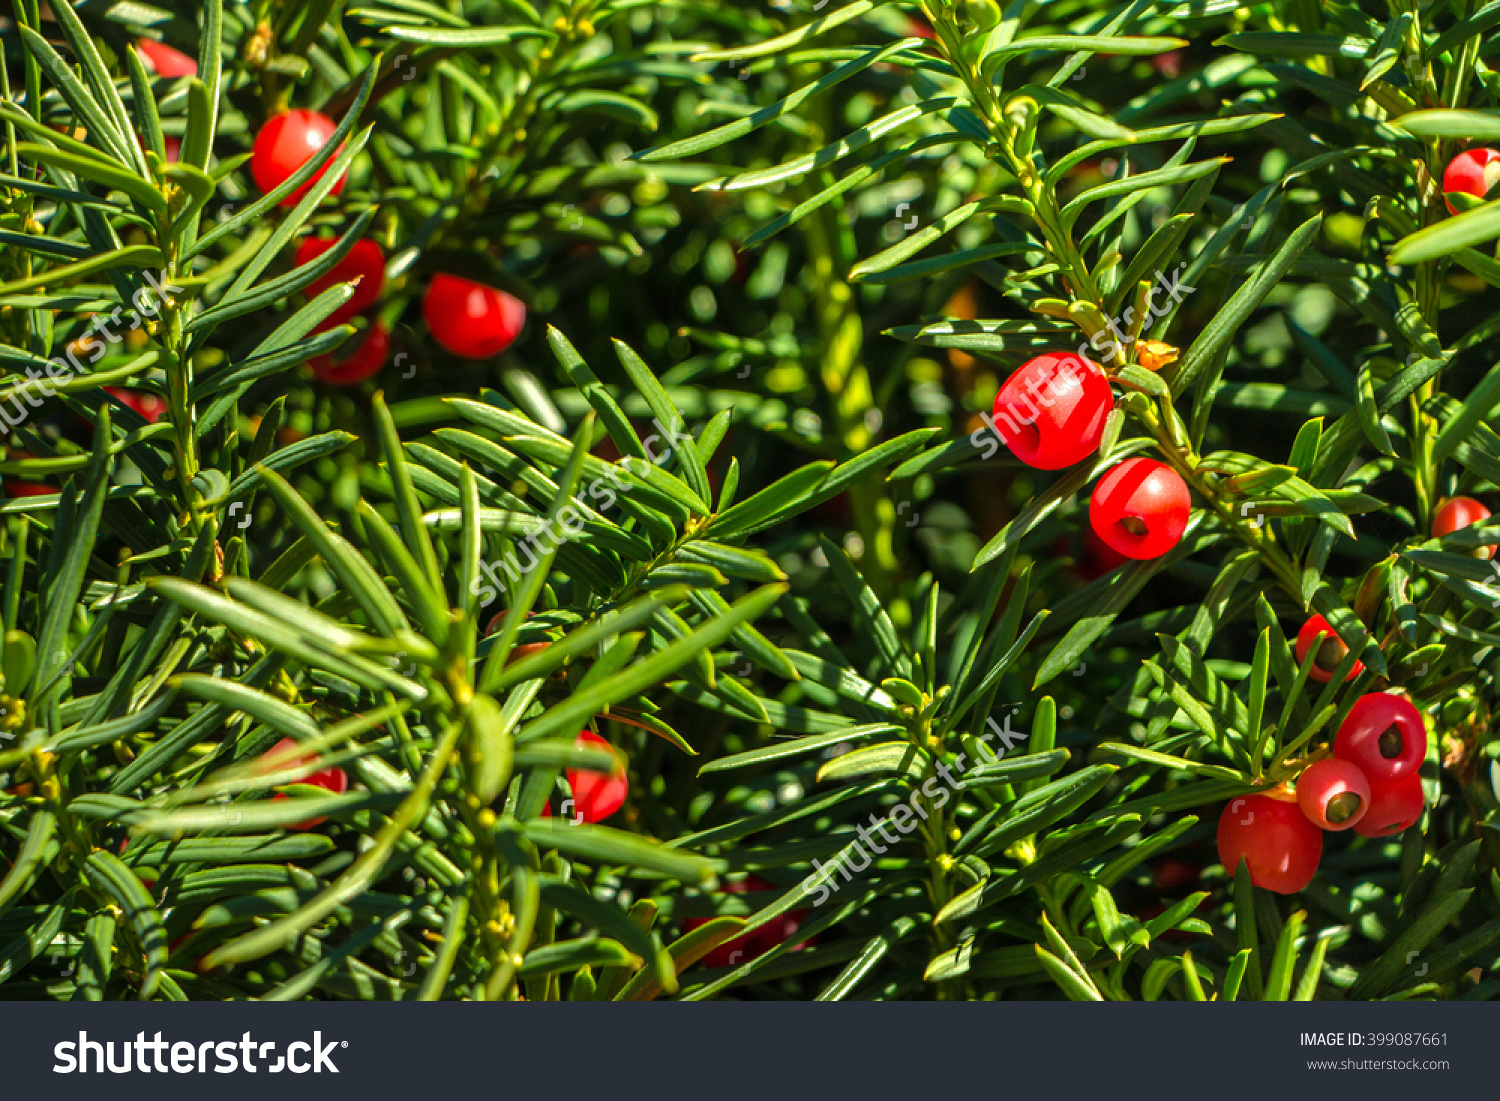 Yew Tree Red Fruits Taxus Baccata Stock Photo 399087661.